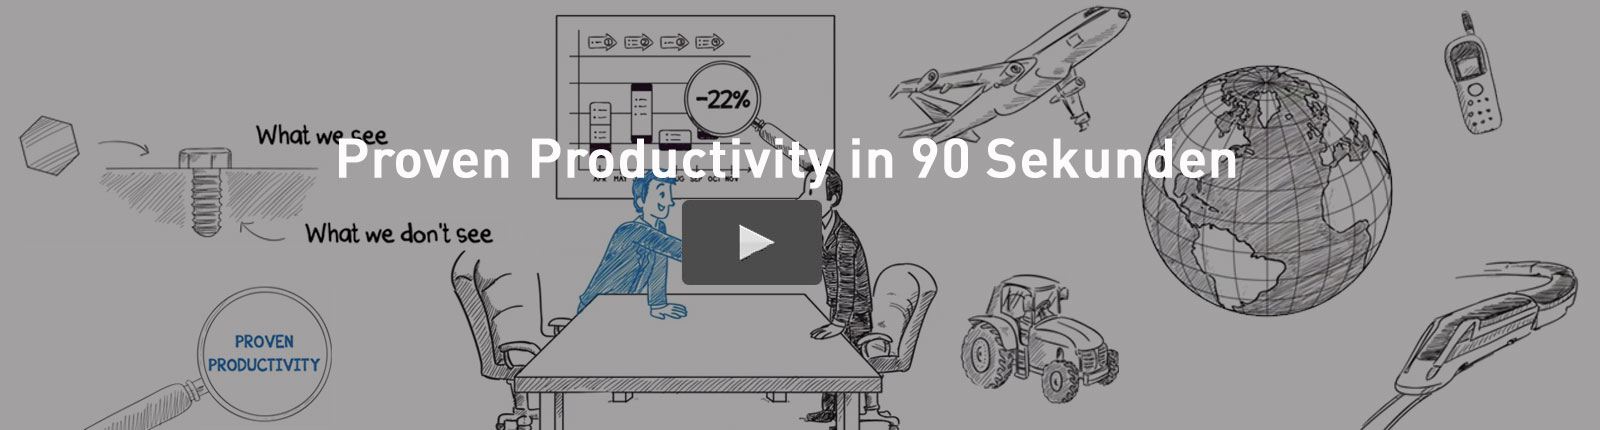 Proven Productivity in 90 Sekunden